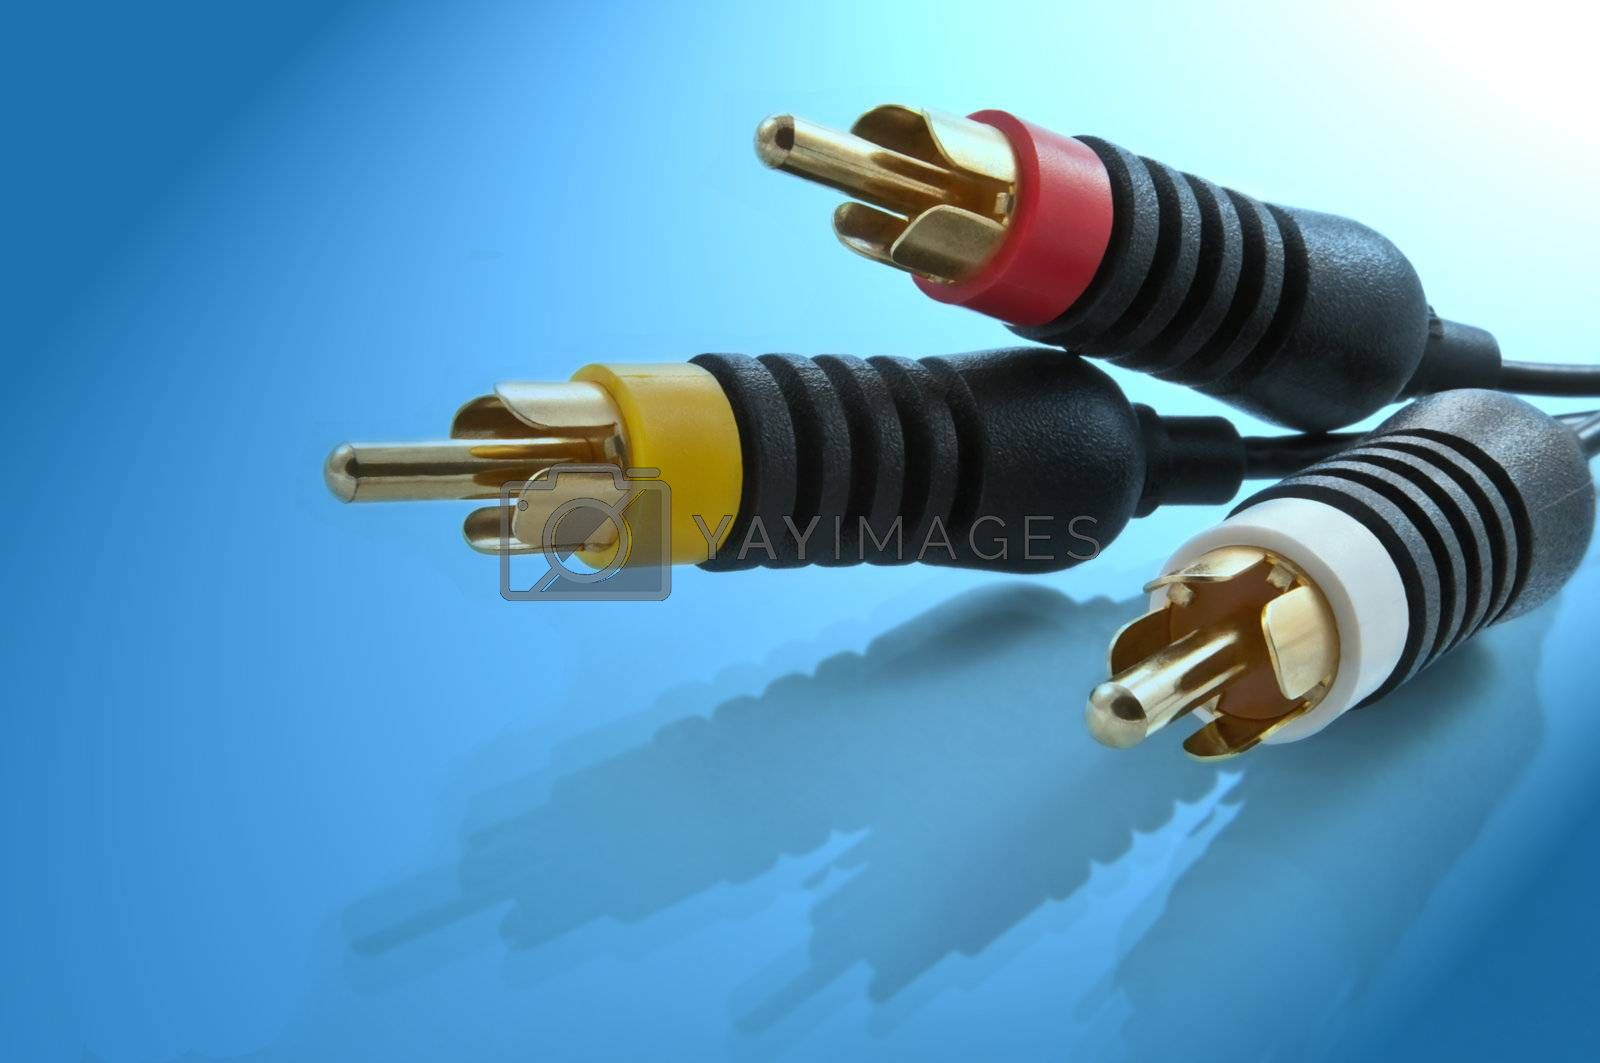 Close up of AV cable connectors with blue light effect background.